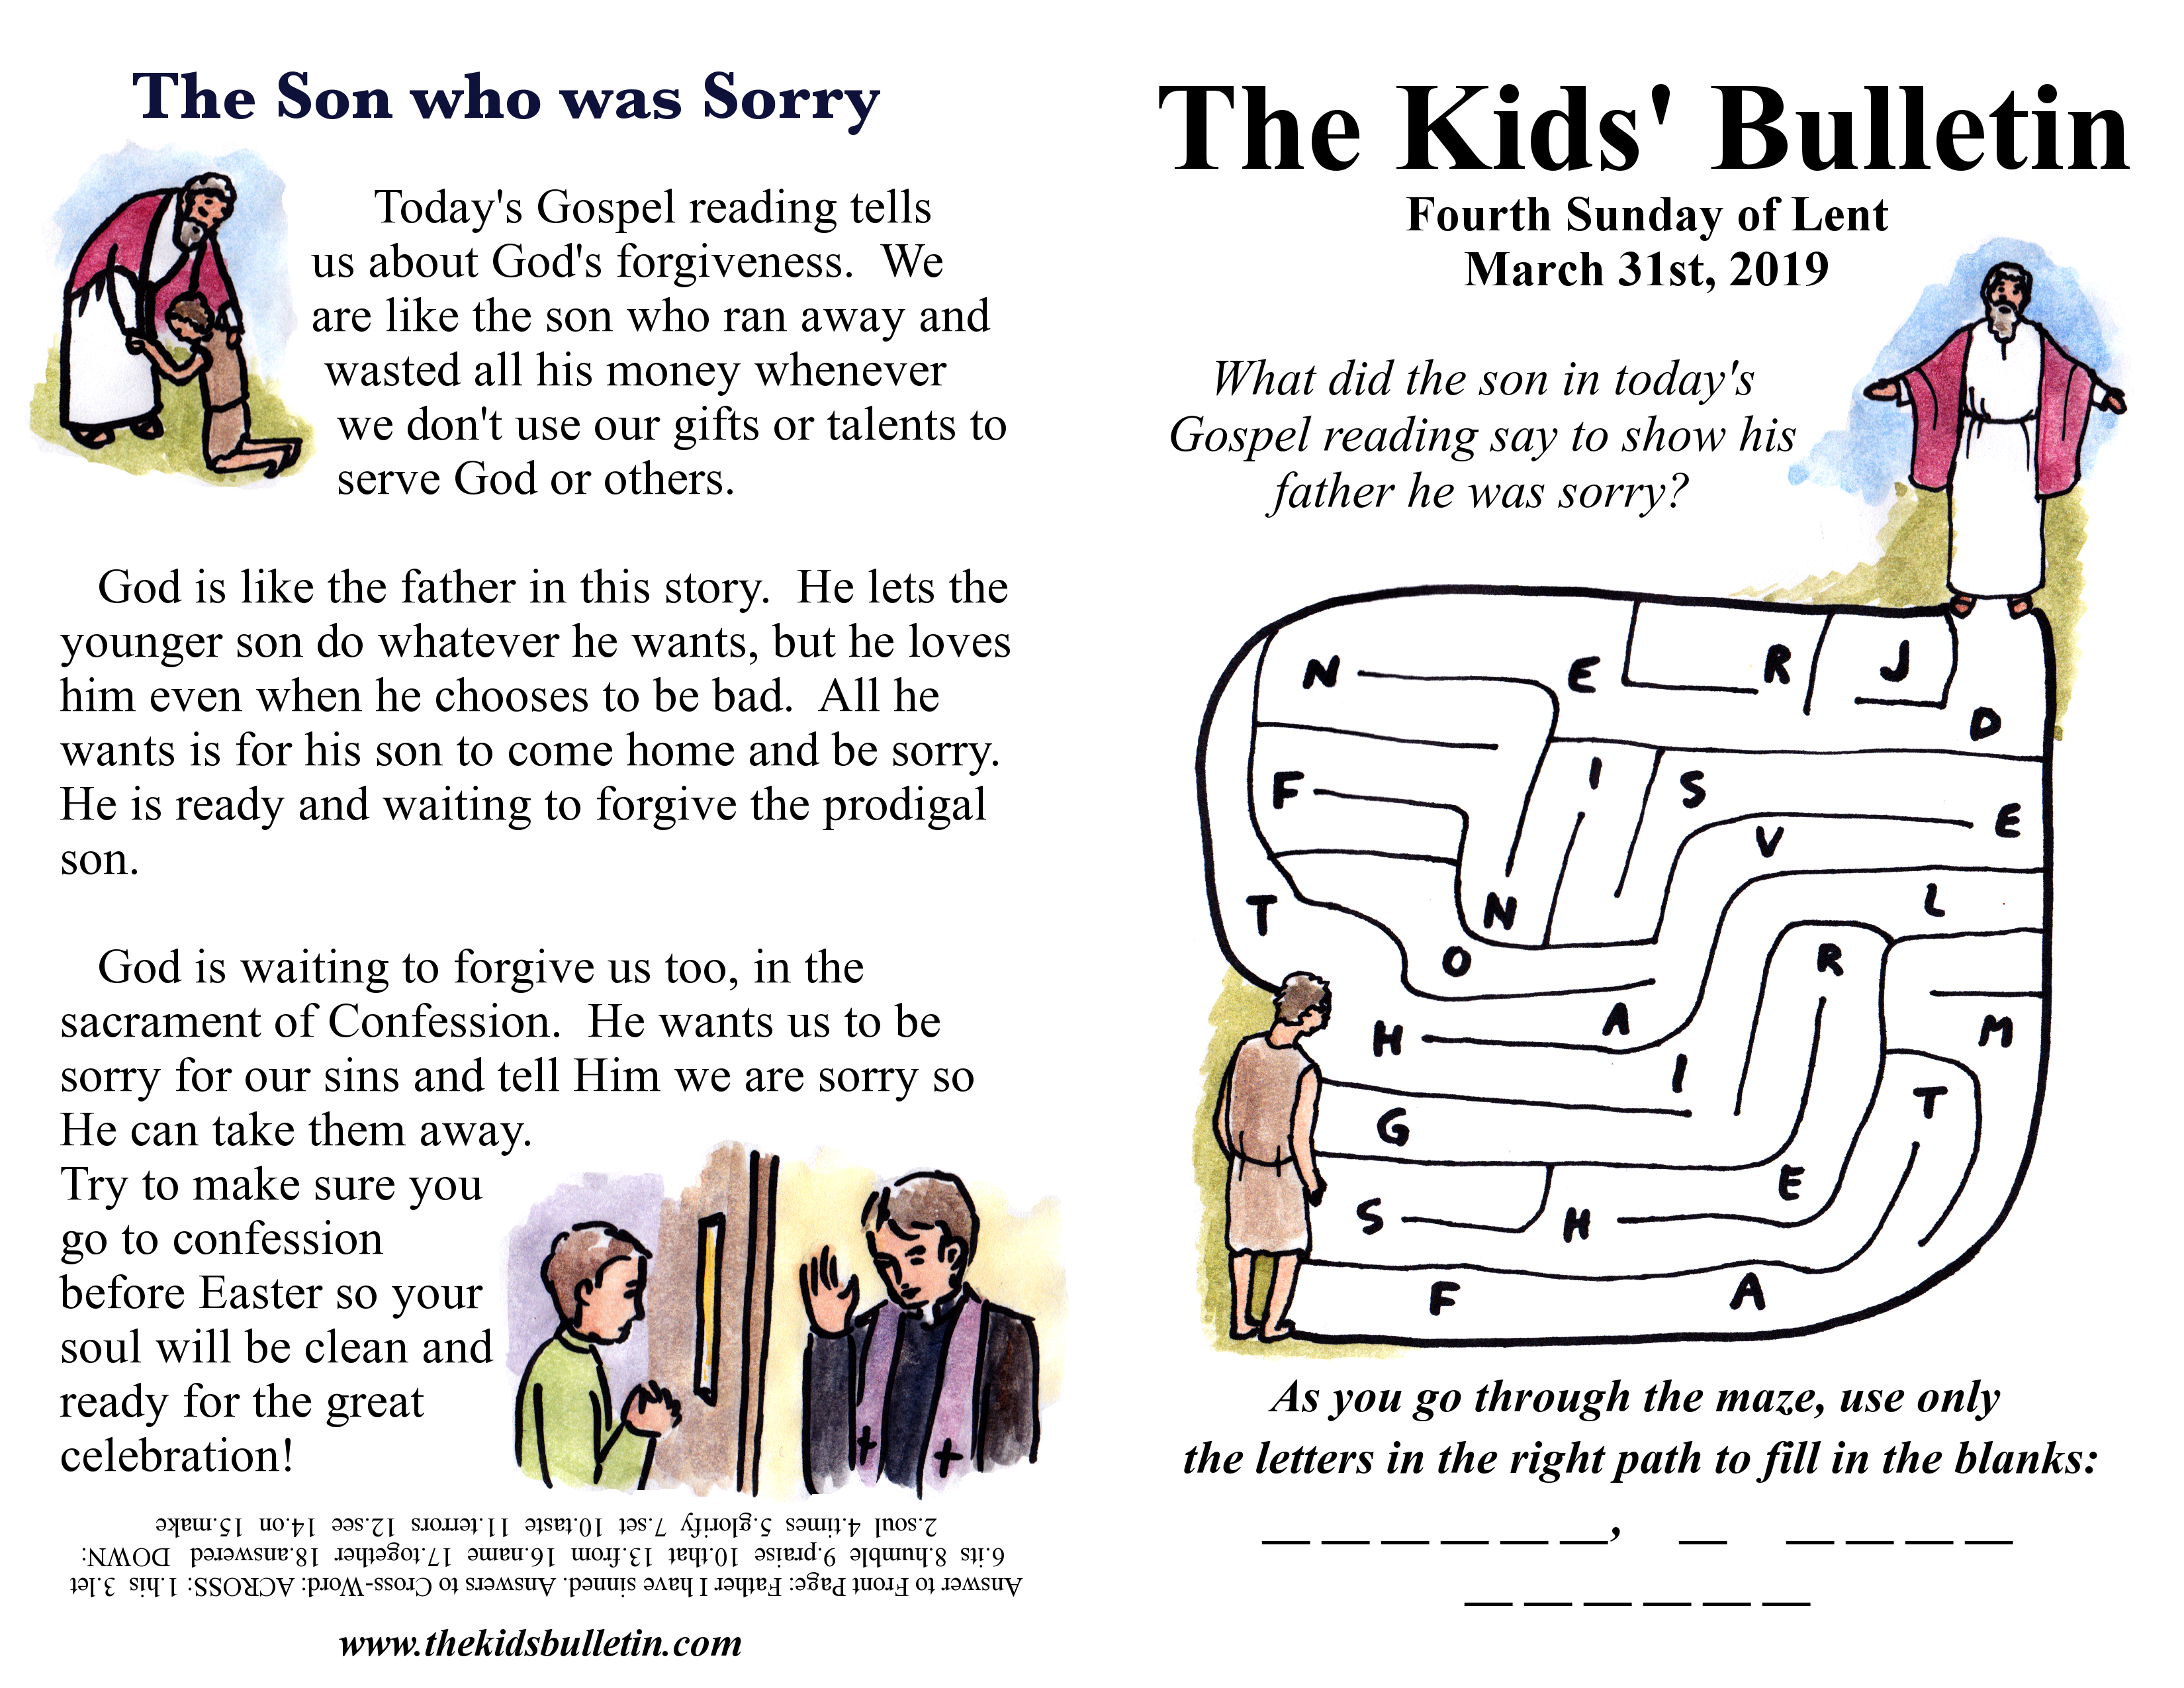 The Kids Bulletin For Sunday March 31st